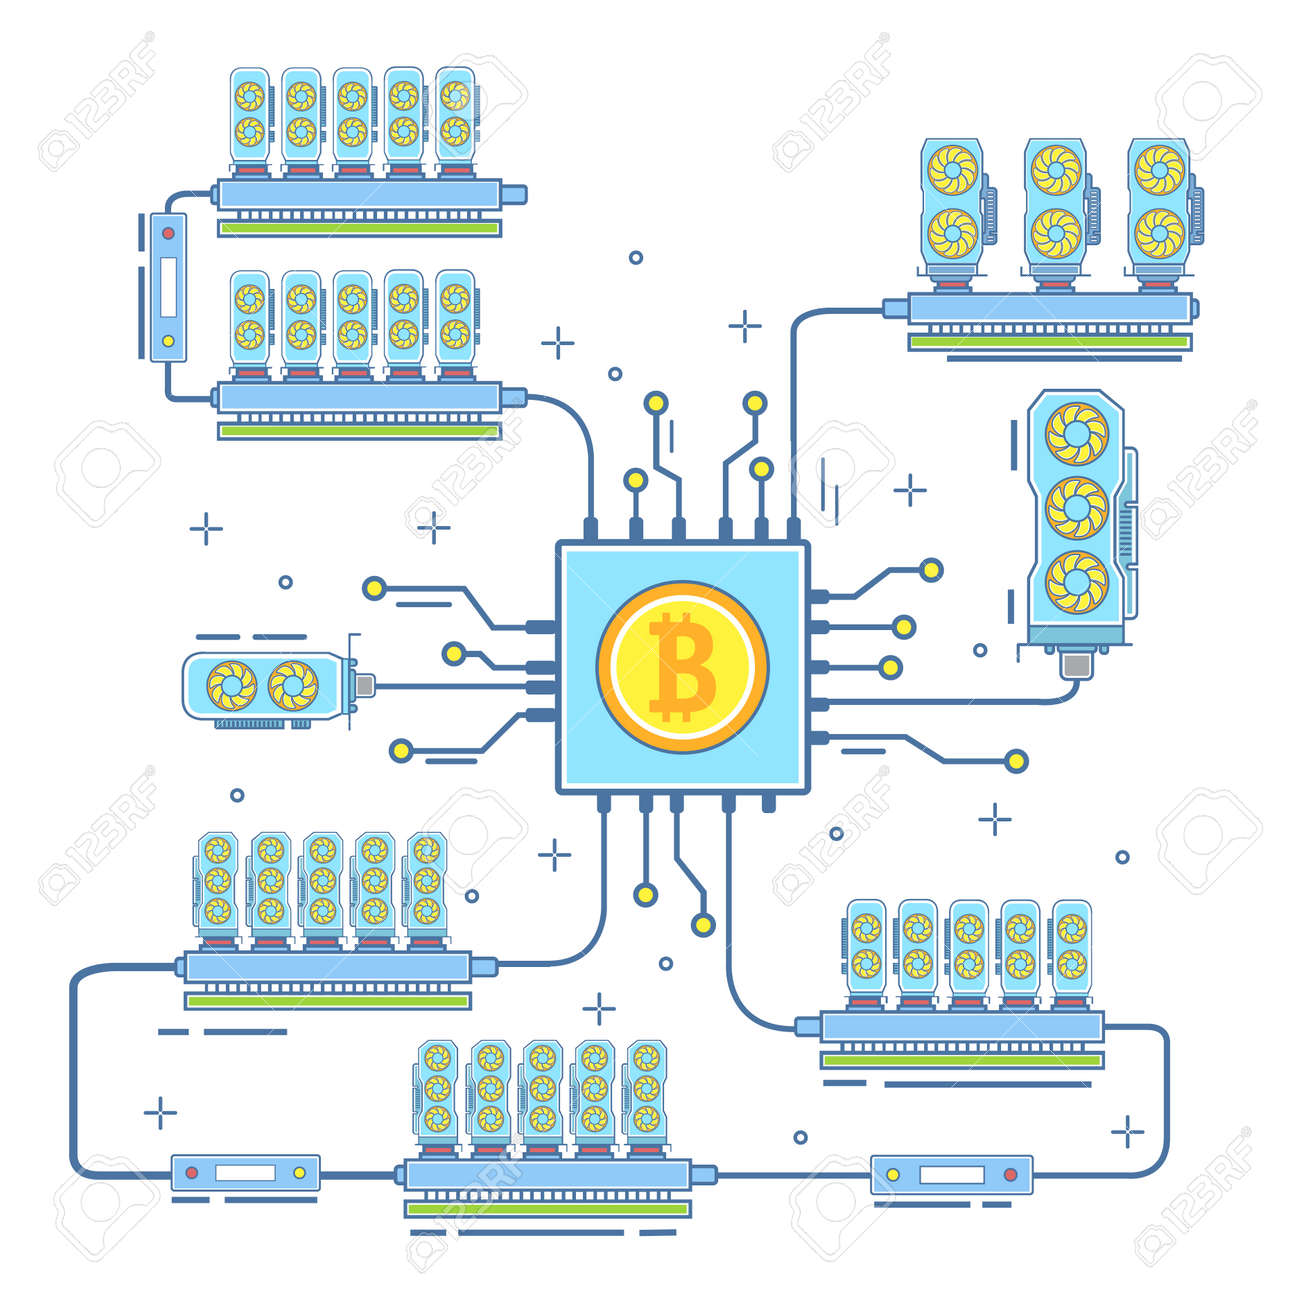 Bitcoin Farm Concept Vector Illustration Digital Currency Or Cryptocurrency Mining And Blockchain